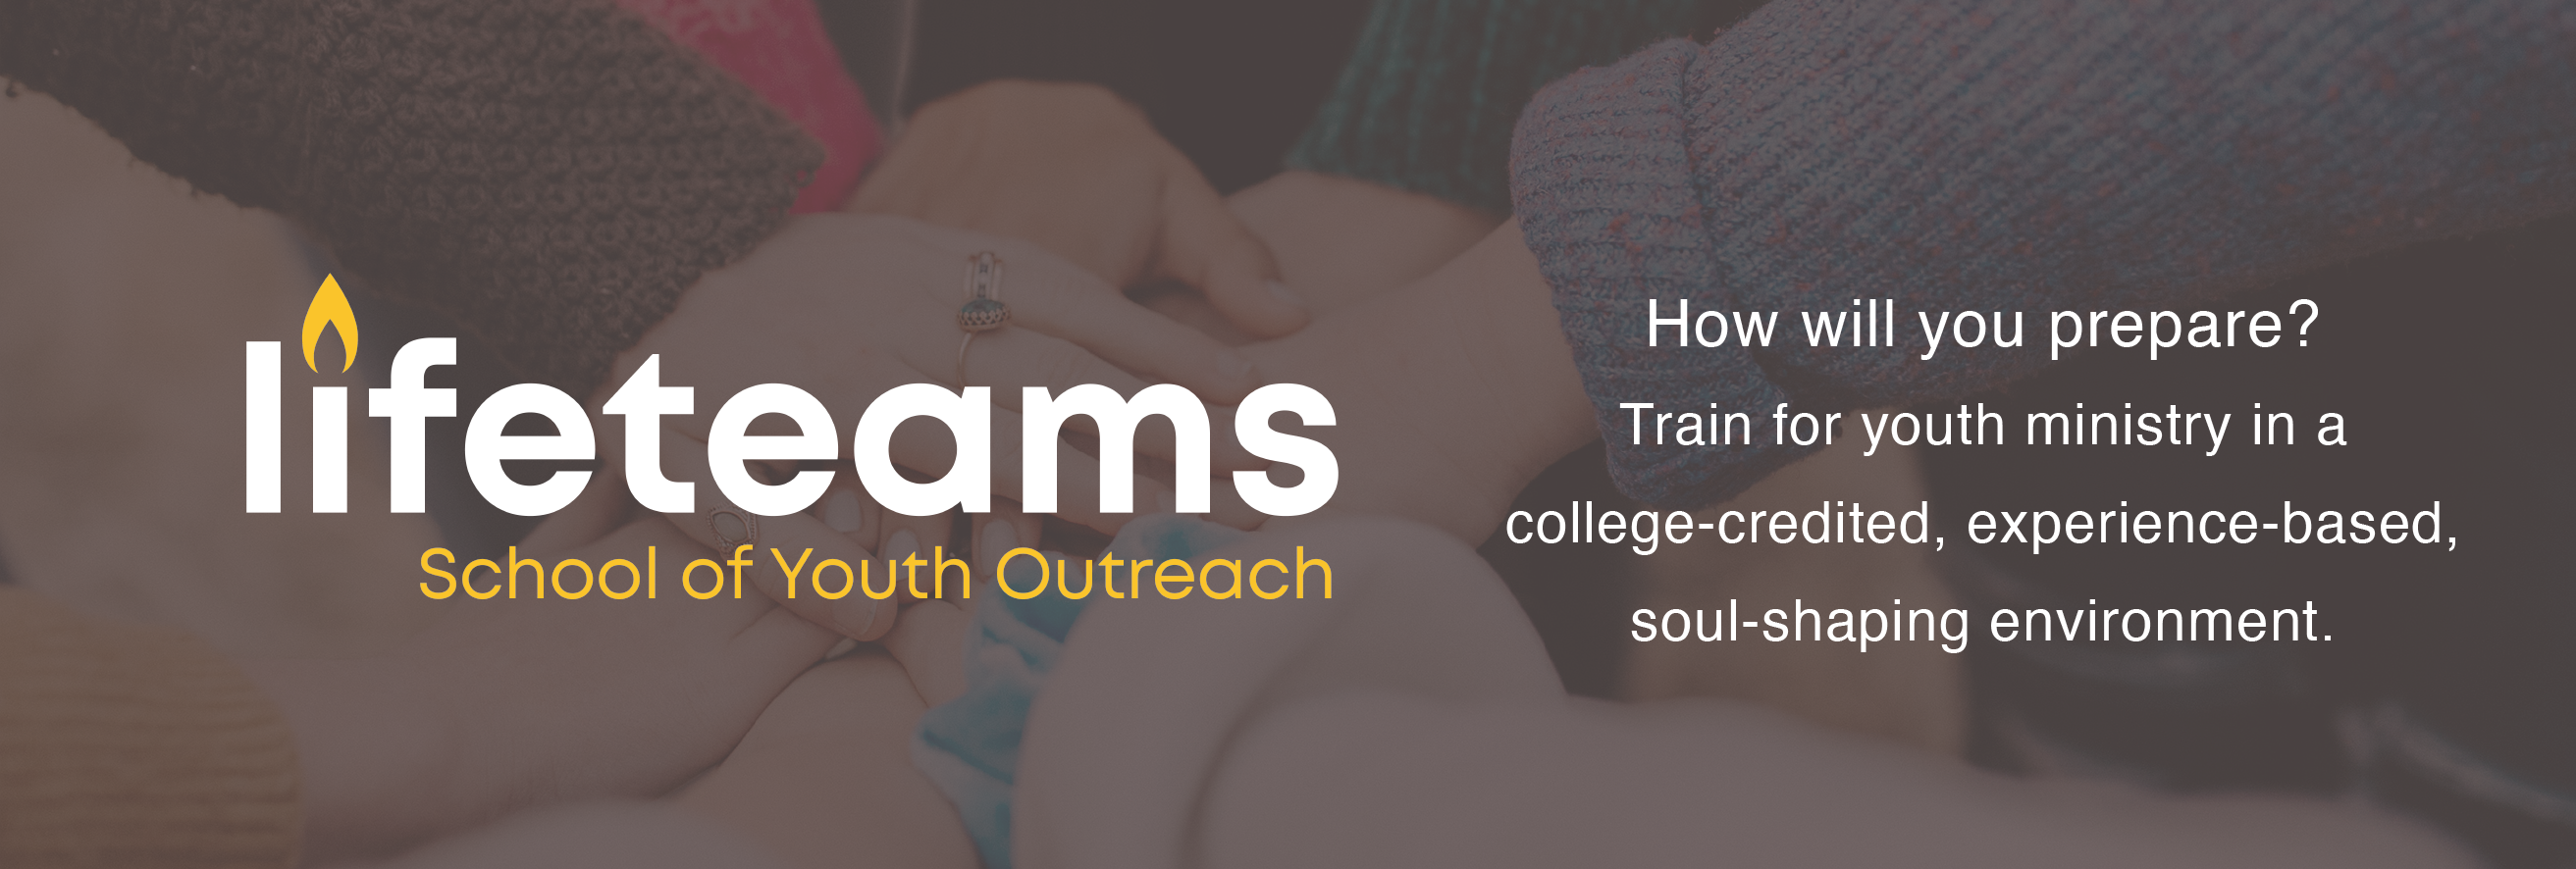 Lifeteams. School of Youth Outreach. How will you prepare? Train for youth ministry in a college-credited, experience-based, soul-shaping environment.